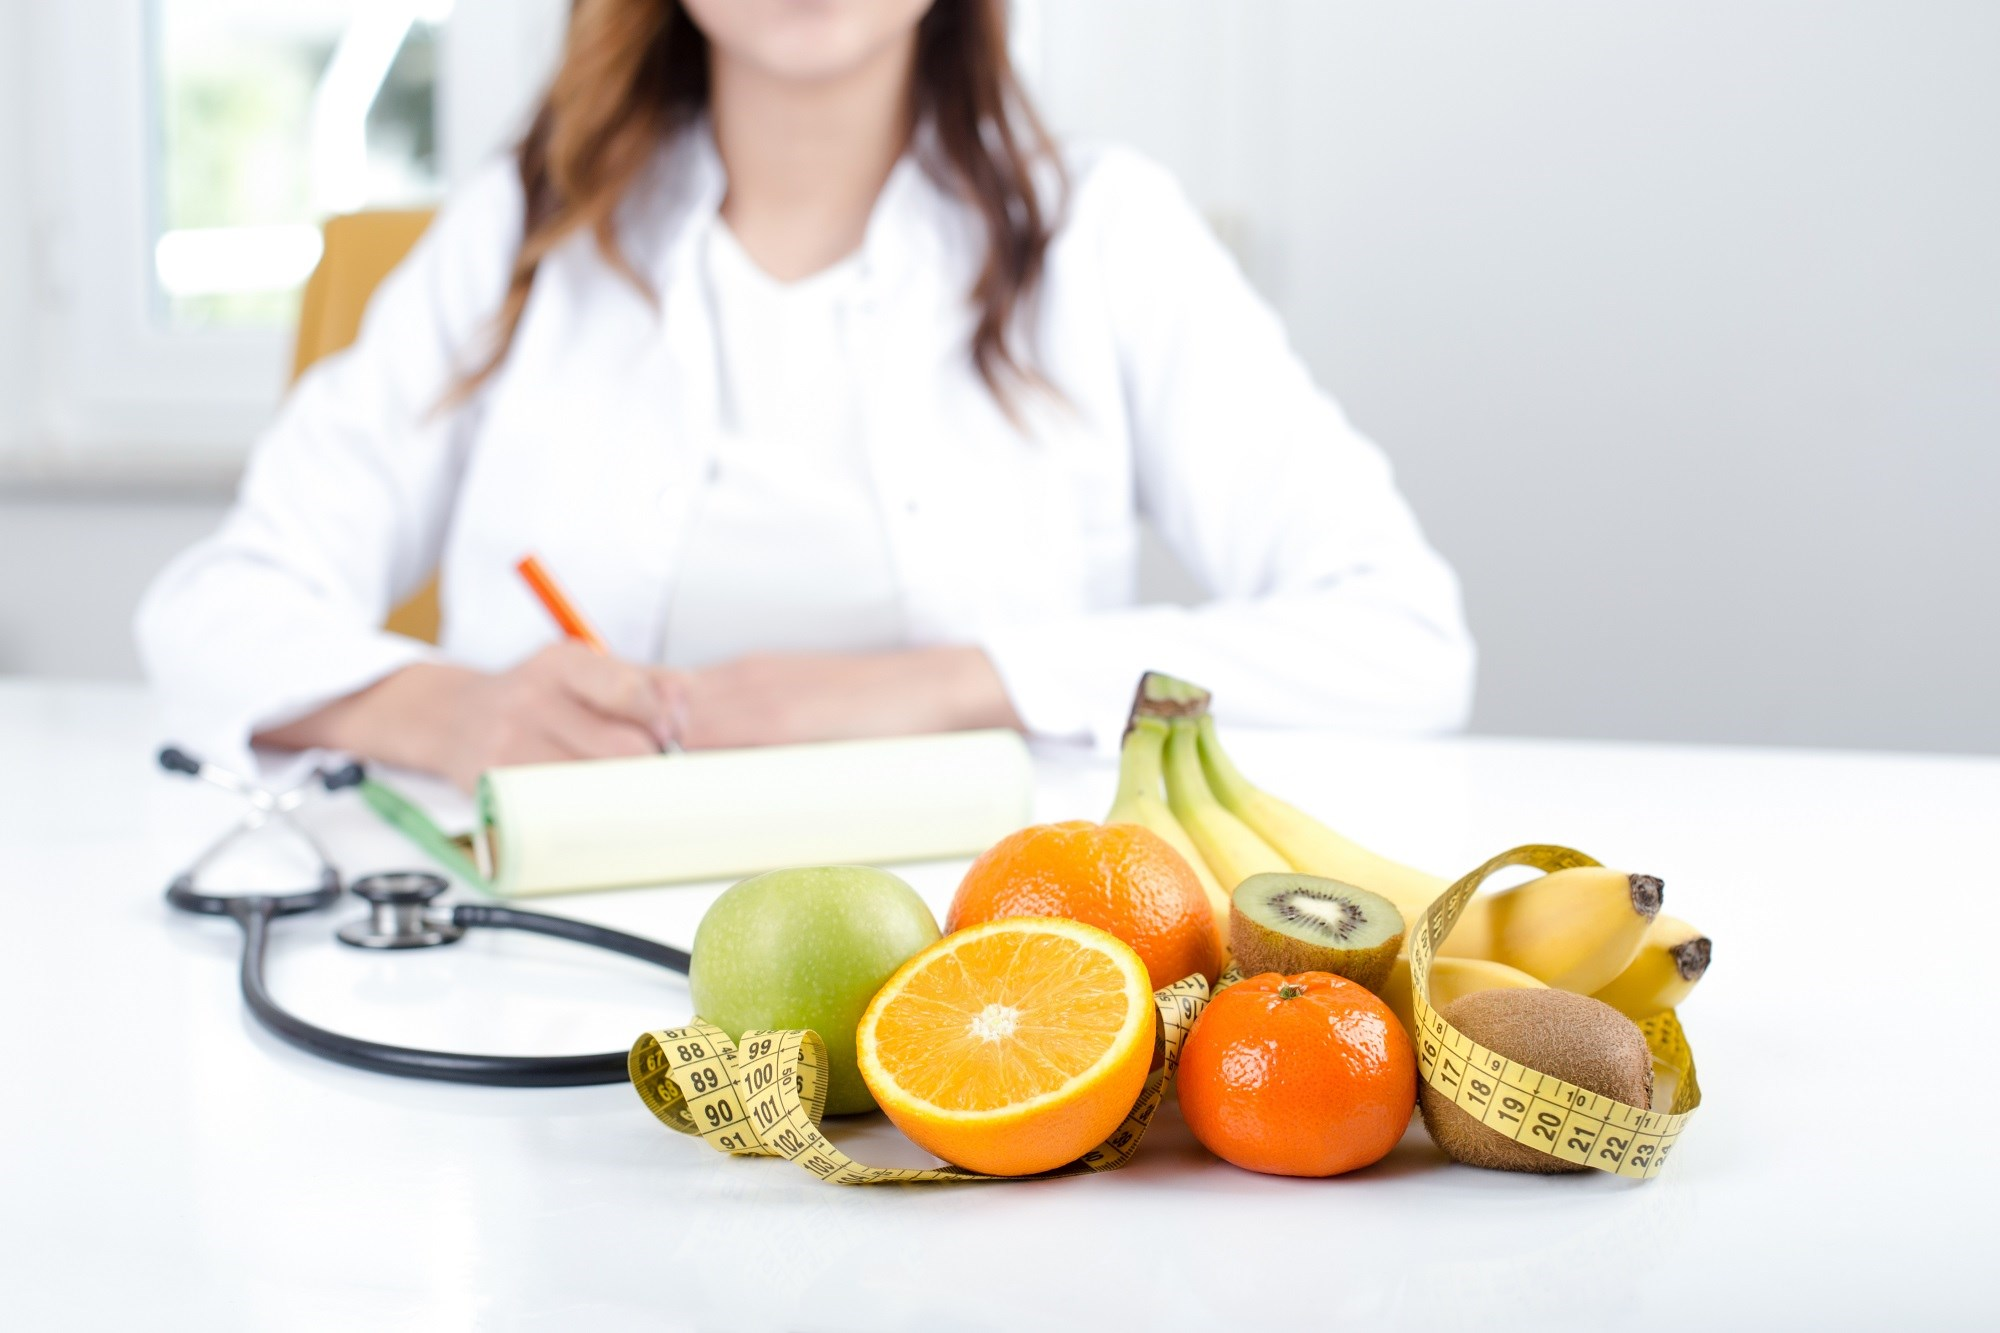 Can Examining Marginalization Identify Gaps in Medical or Nutritional Care?